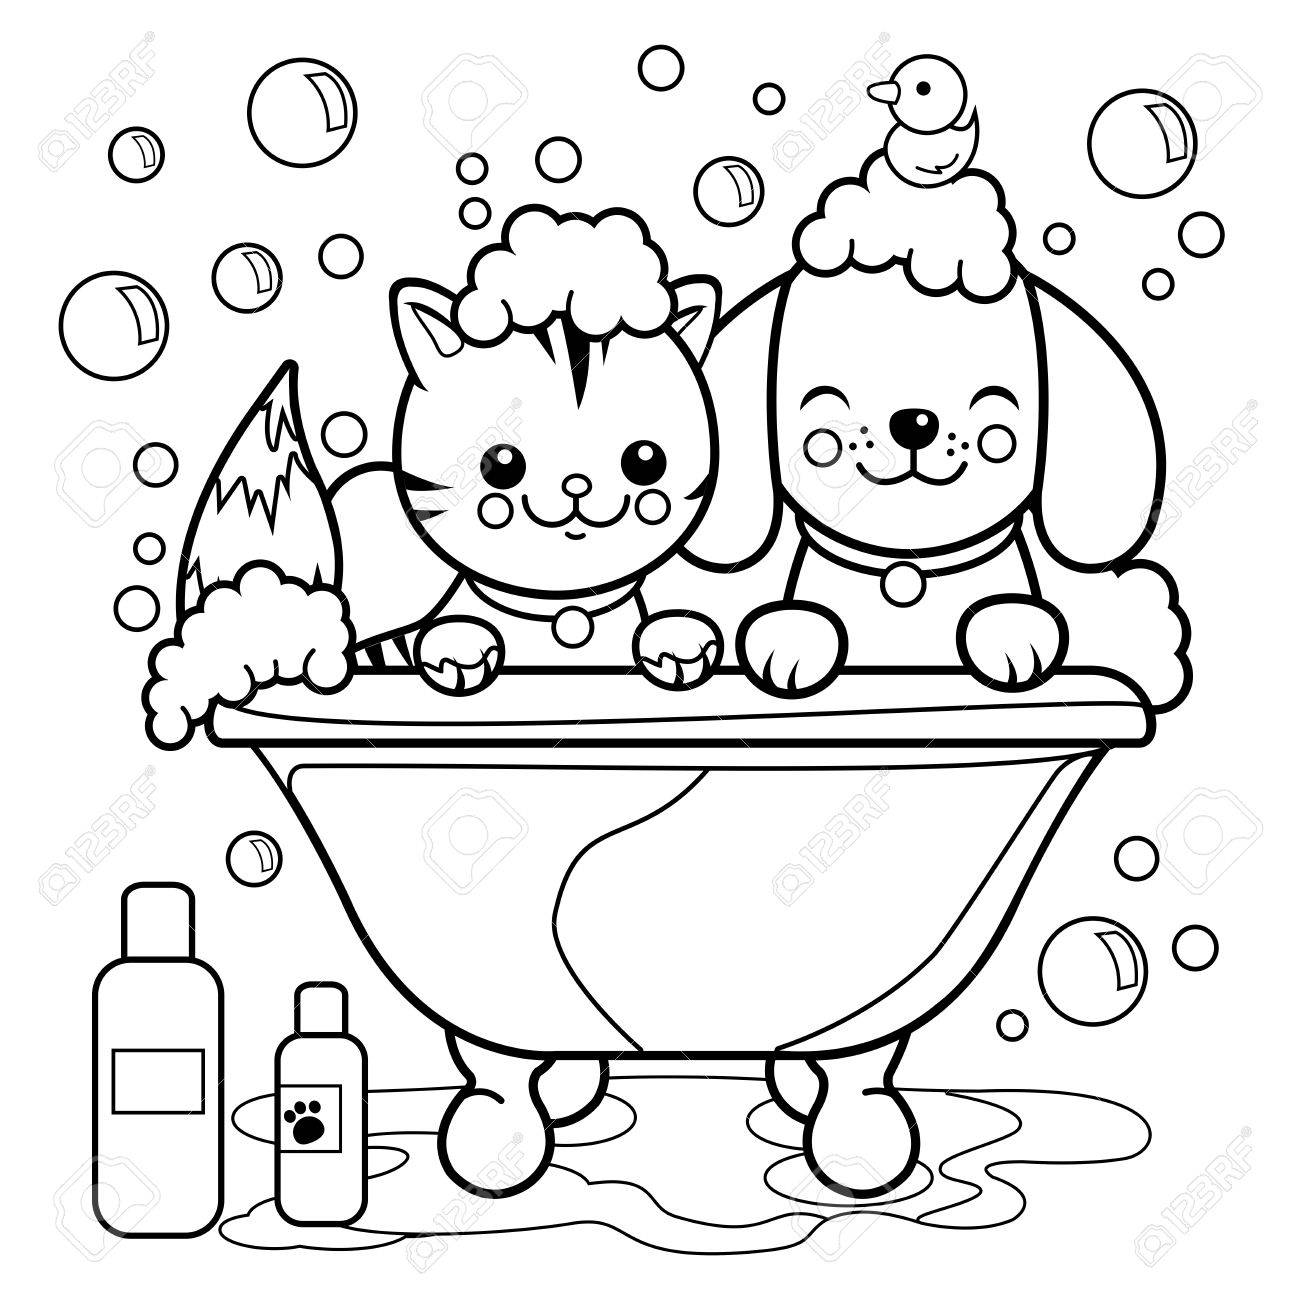 Dog And Cat Taking A Bath. Coloring Book Page. Royalty Free Cliparts ...